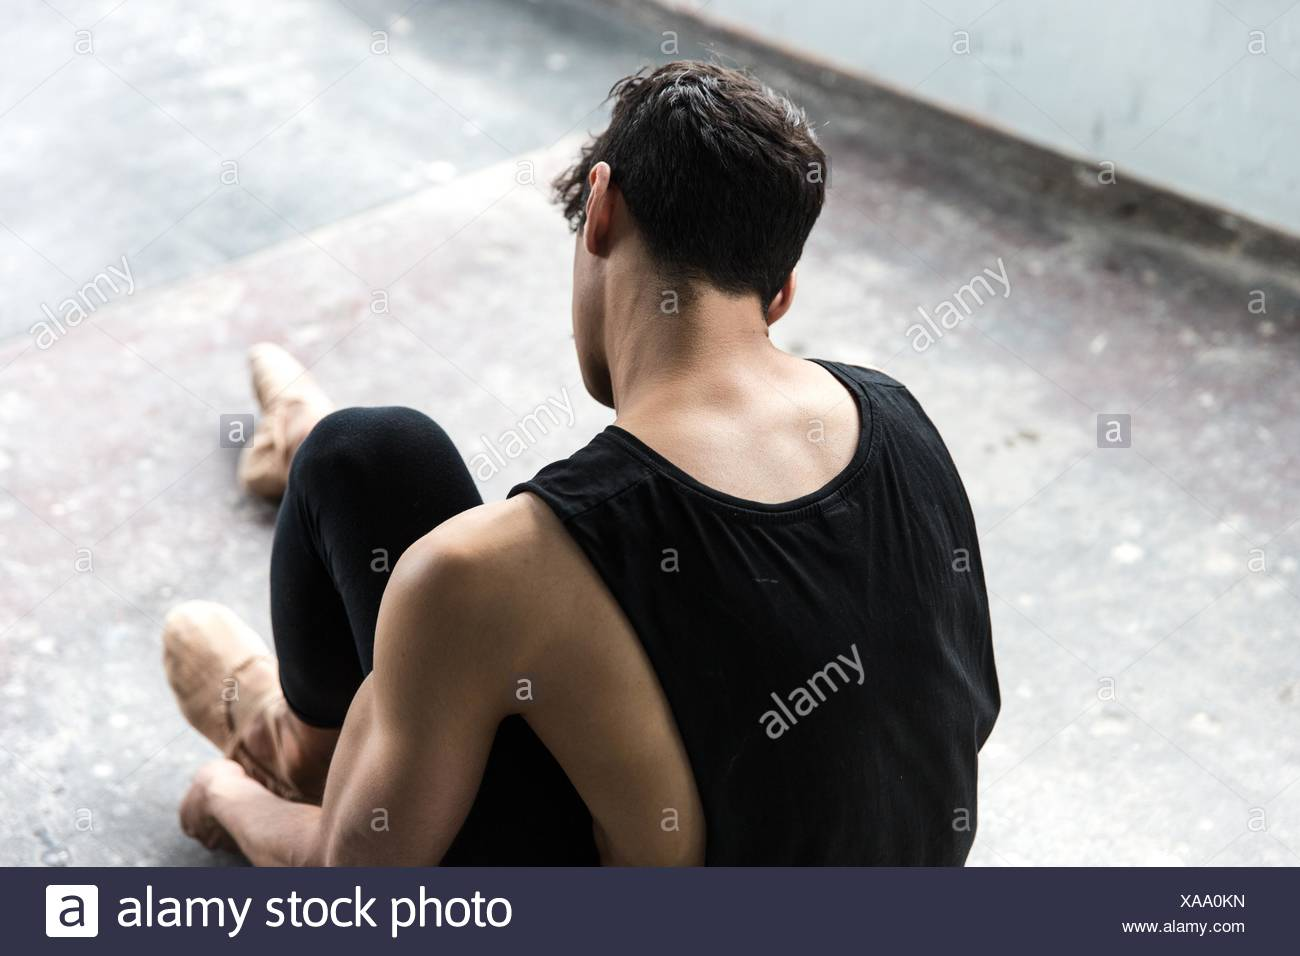 Dancer wearing ballet shoe in studio - Stock Image